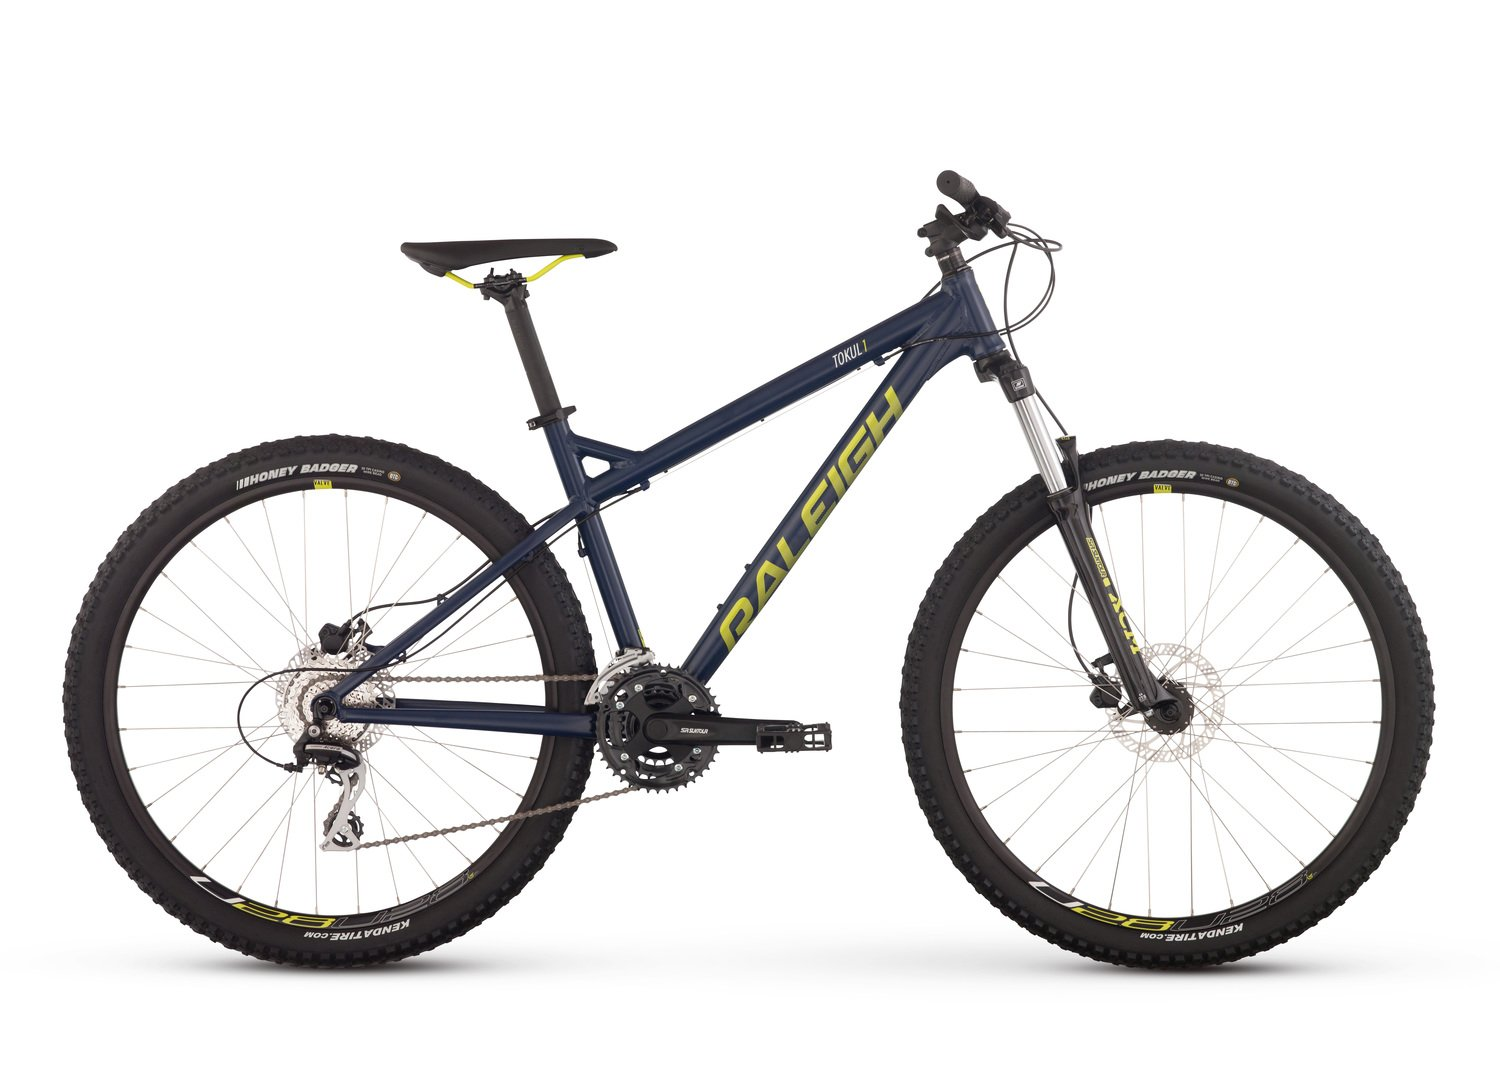 Raleigh Bikes Tokul 1 Mountain Bike Sports Outdoors